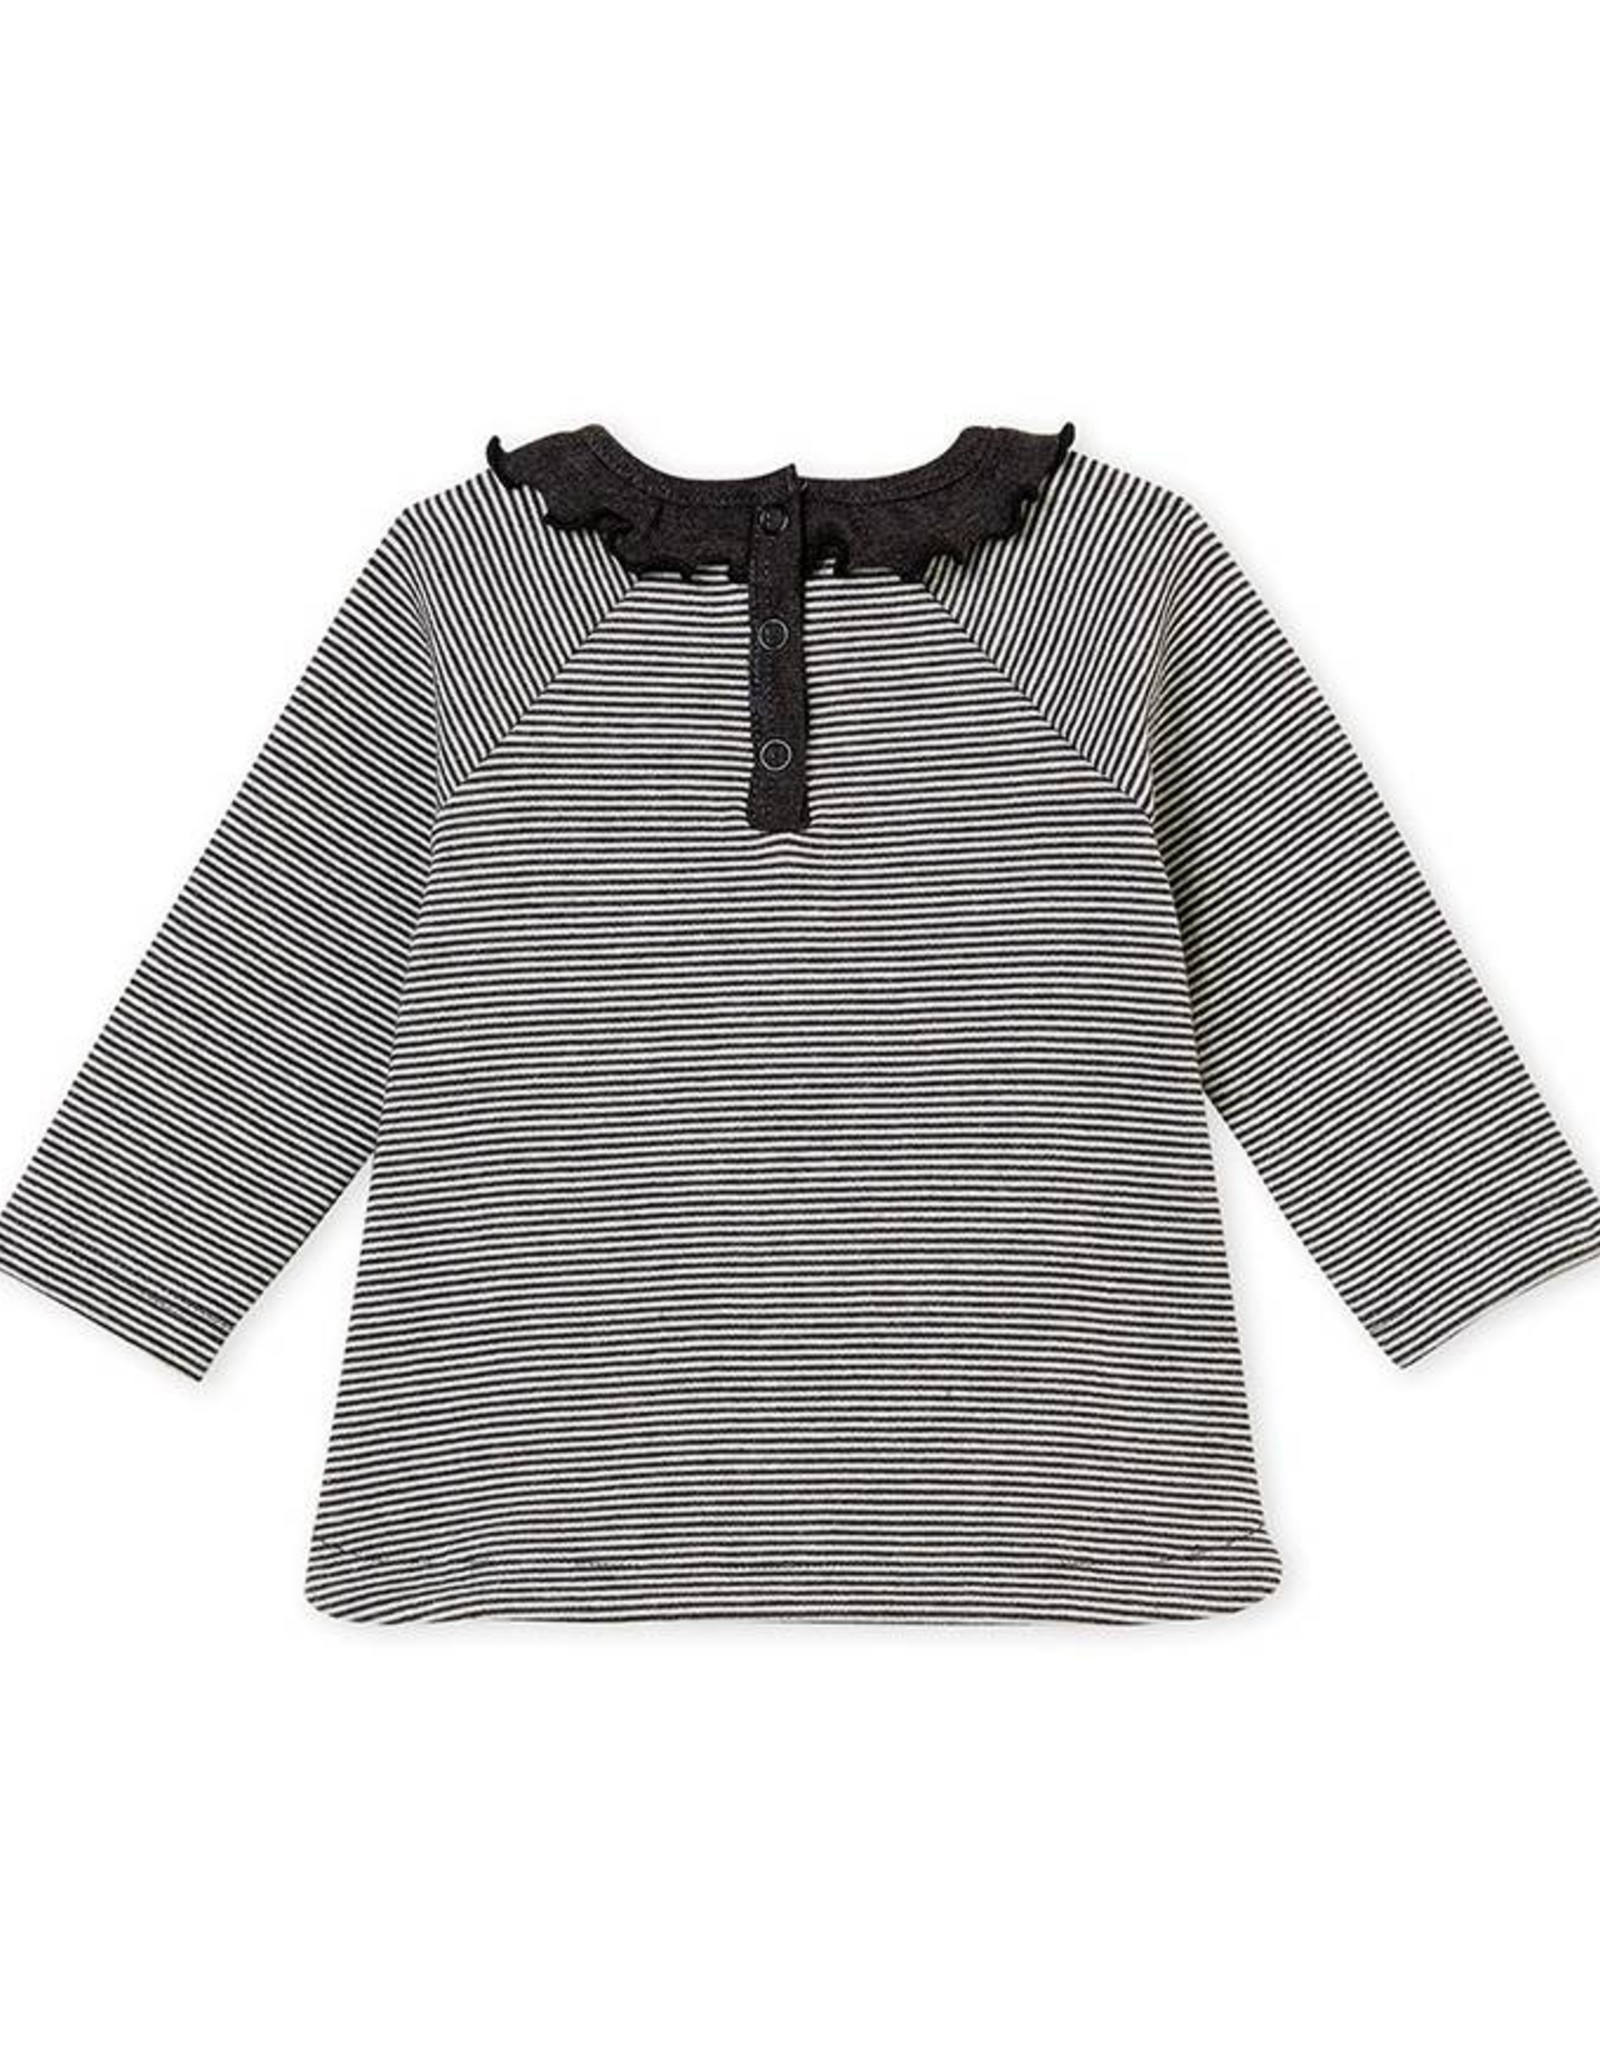 Girl's t-shirt, with stripes